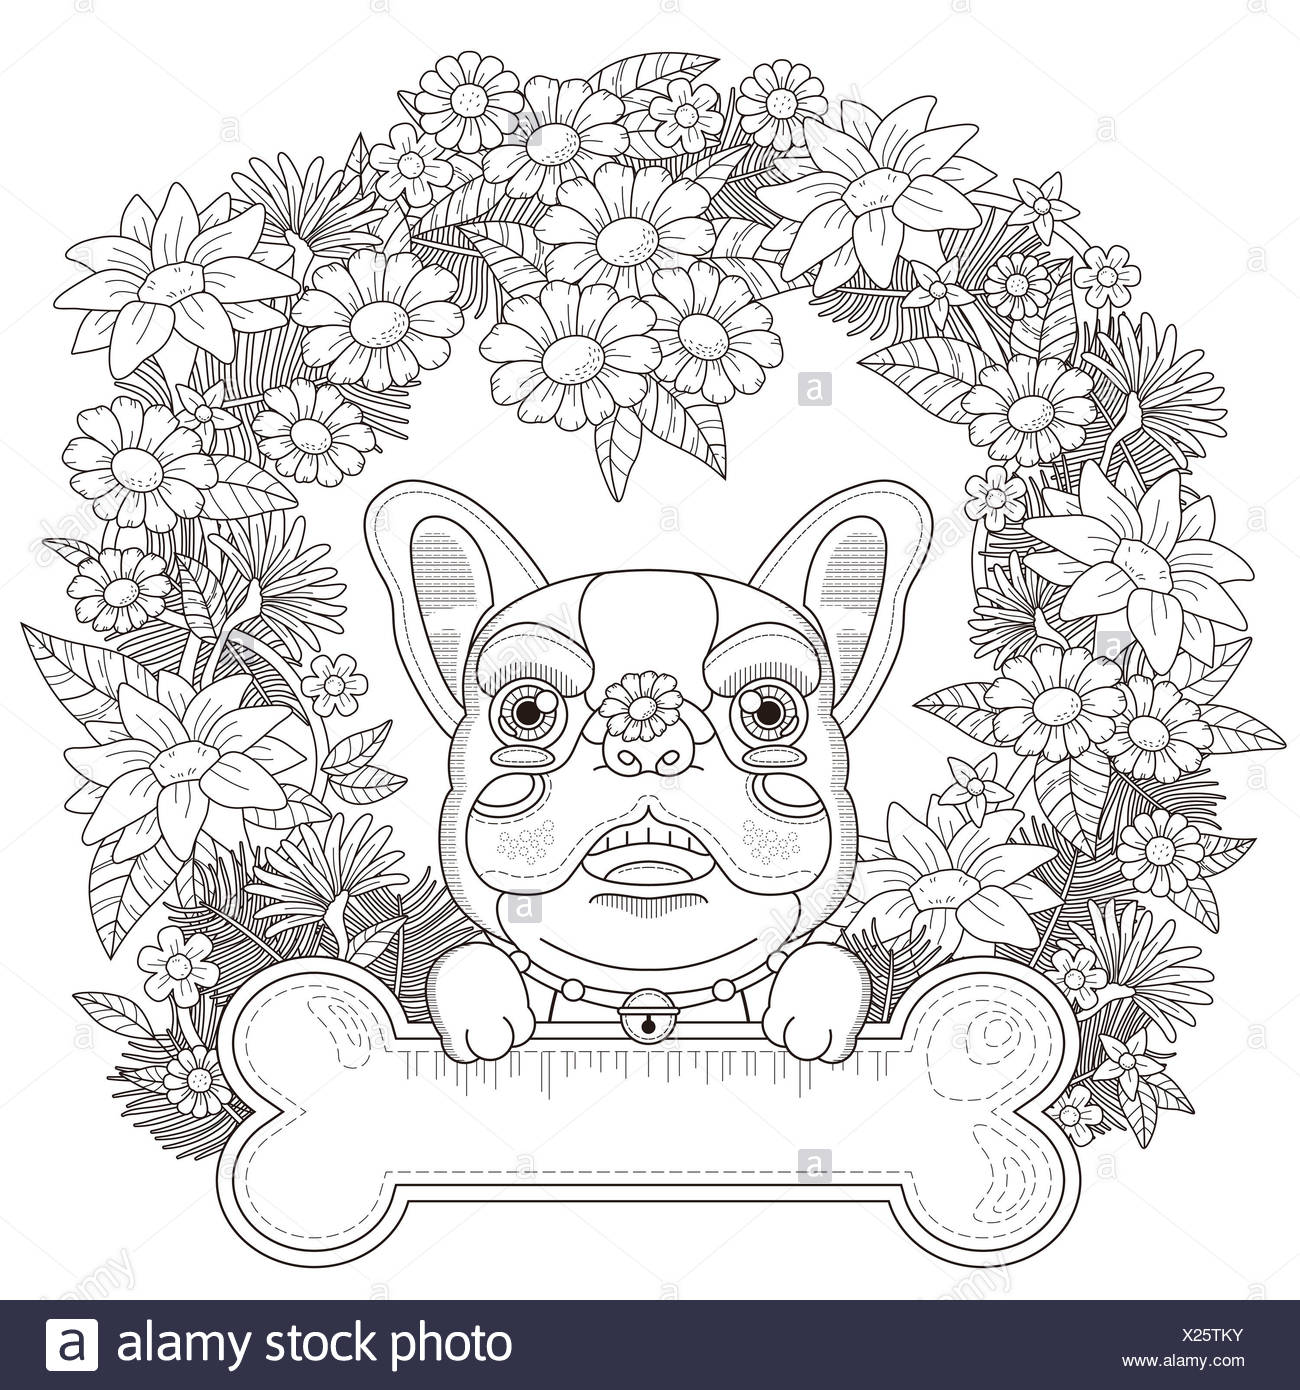 Black Outline Drawing Dog Isolated Stockfotos & Black Outline ...